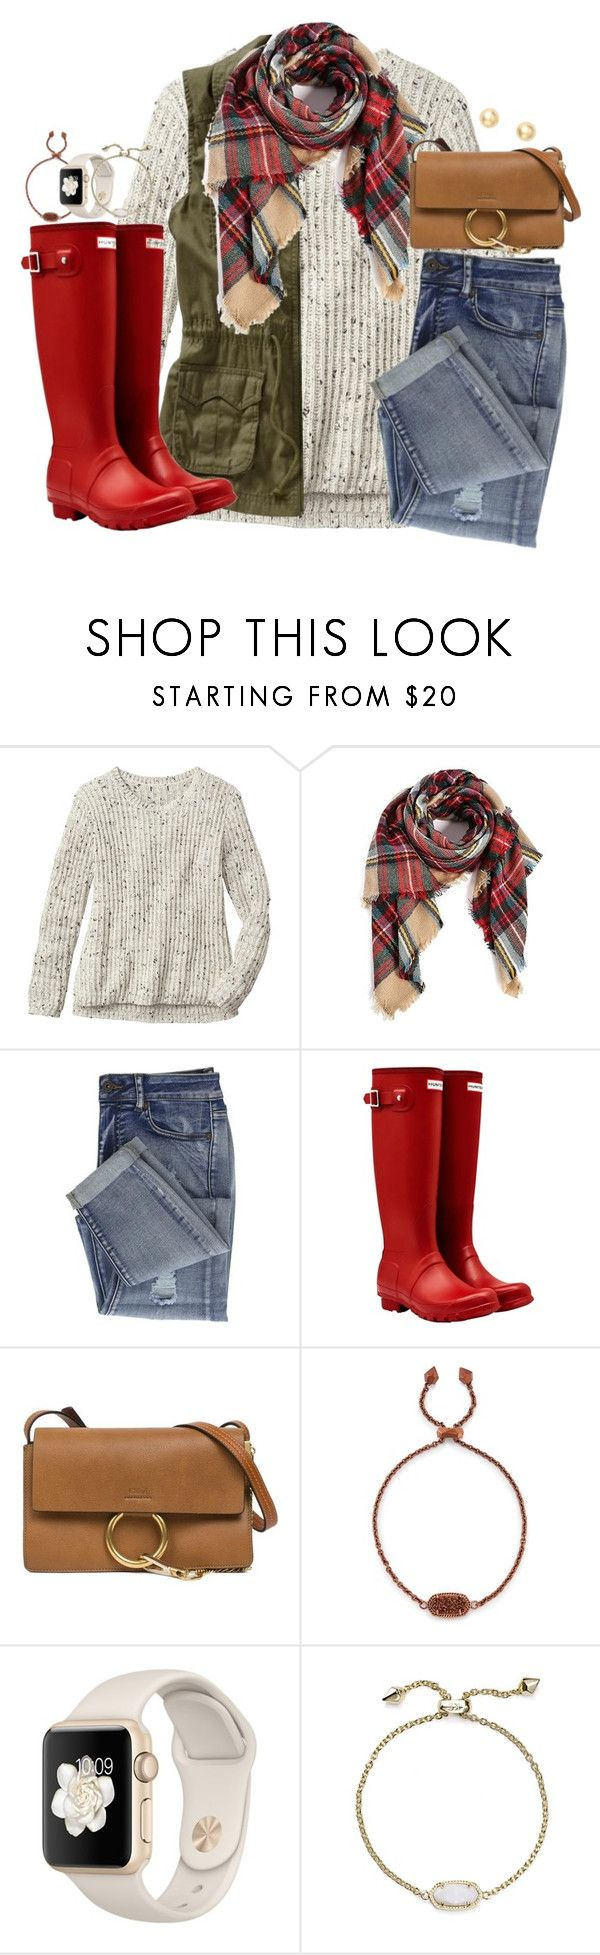 """""""would y'all like to see a christmas gift haul?? comment!!"""" by kaley-ii ❤ liked on Polyvore featuring Gap, Old Navy, Hunter, Chloé, Kendra Scott and Bony Levy"""